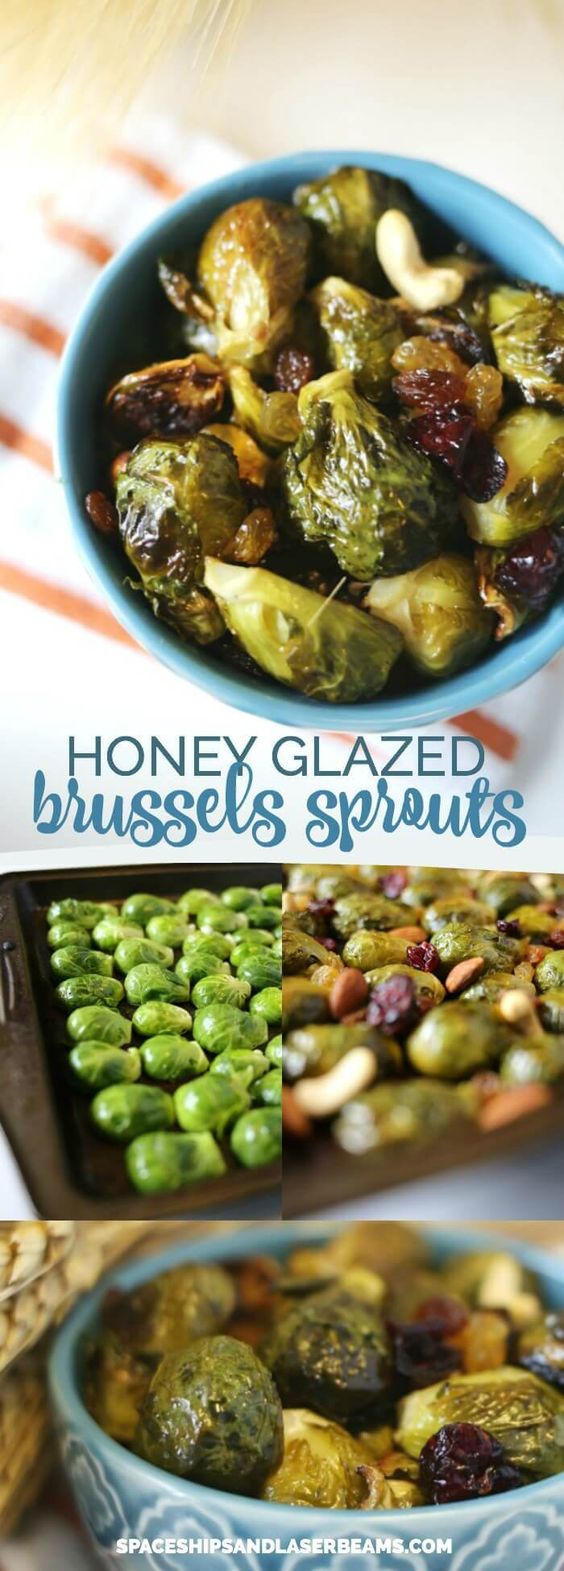 Honey Glazed Brussel Sprouts via @spaceshipslb